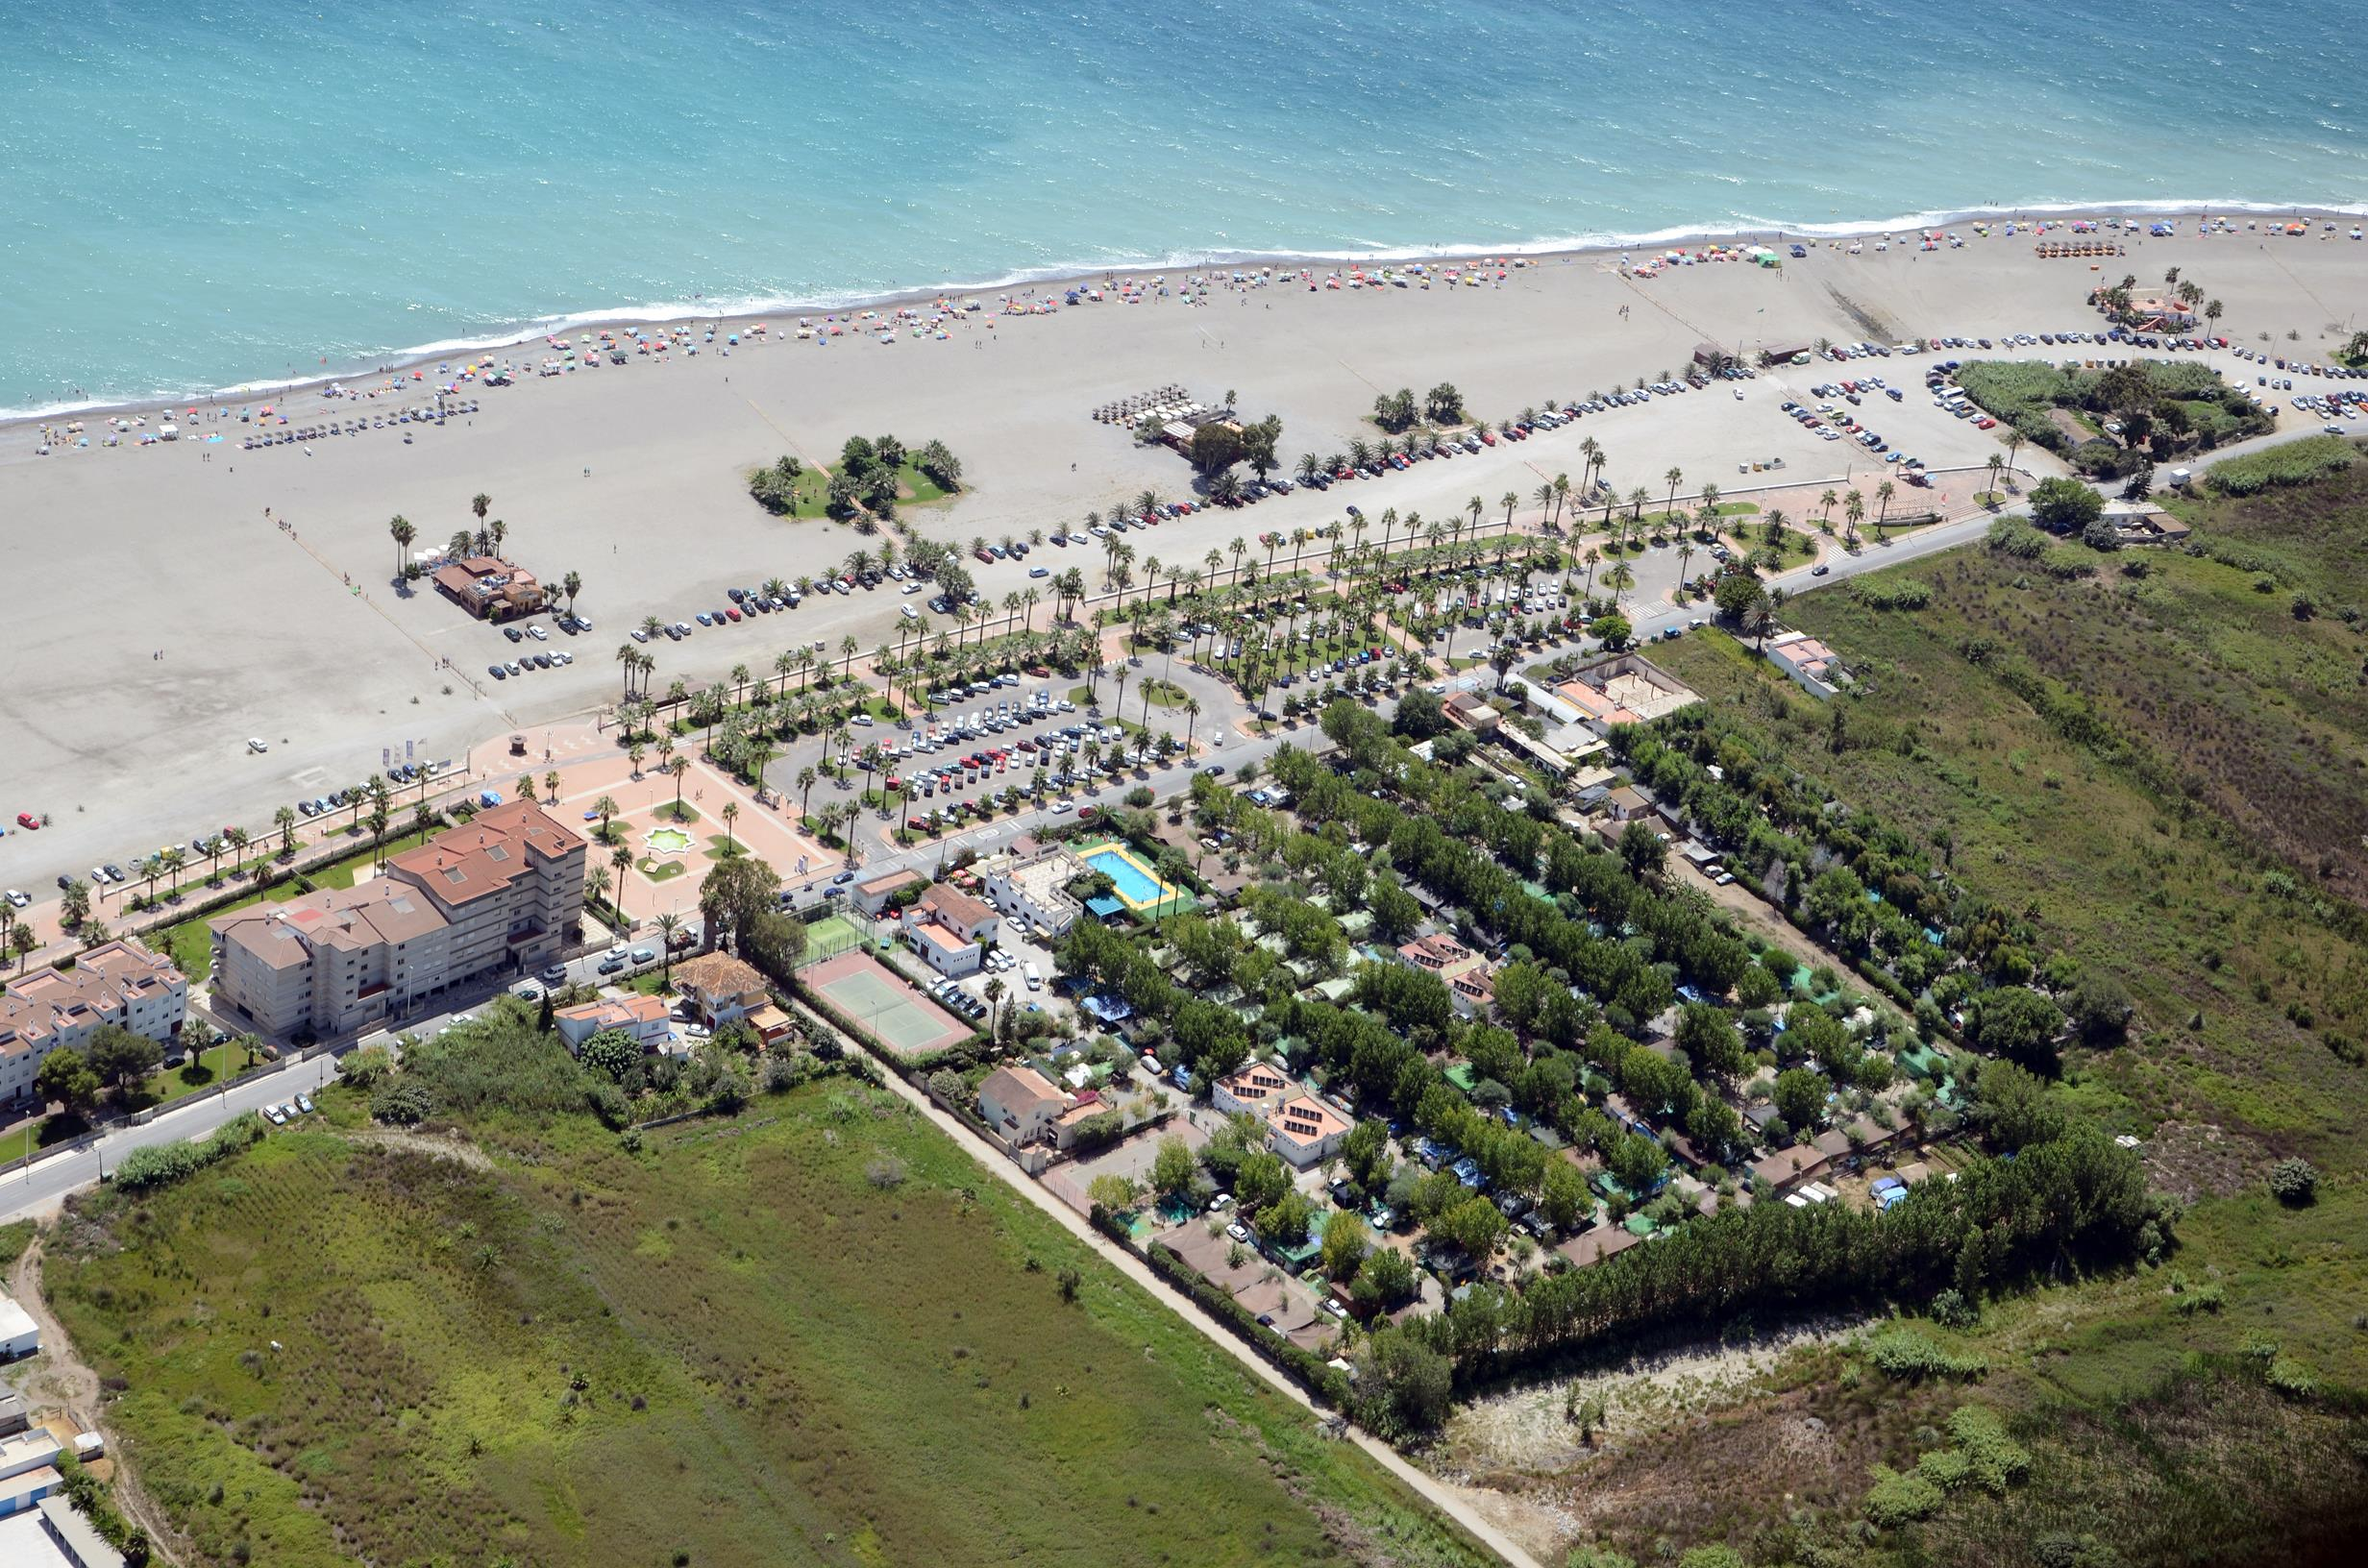 Establishment Camping Playa De Poniente - Motril